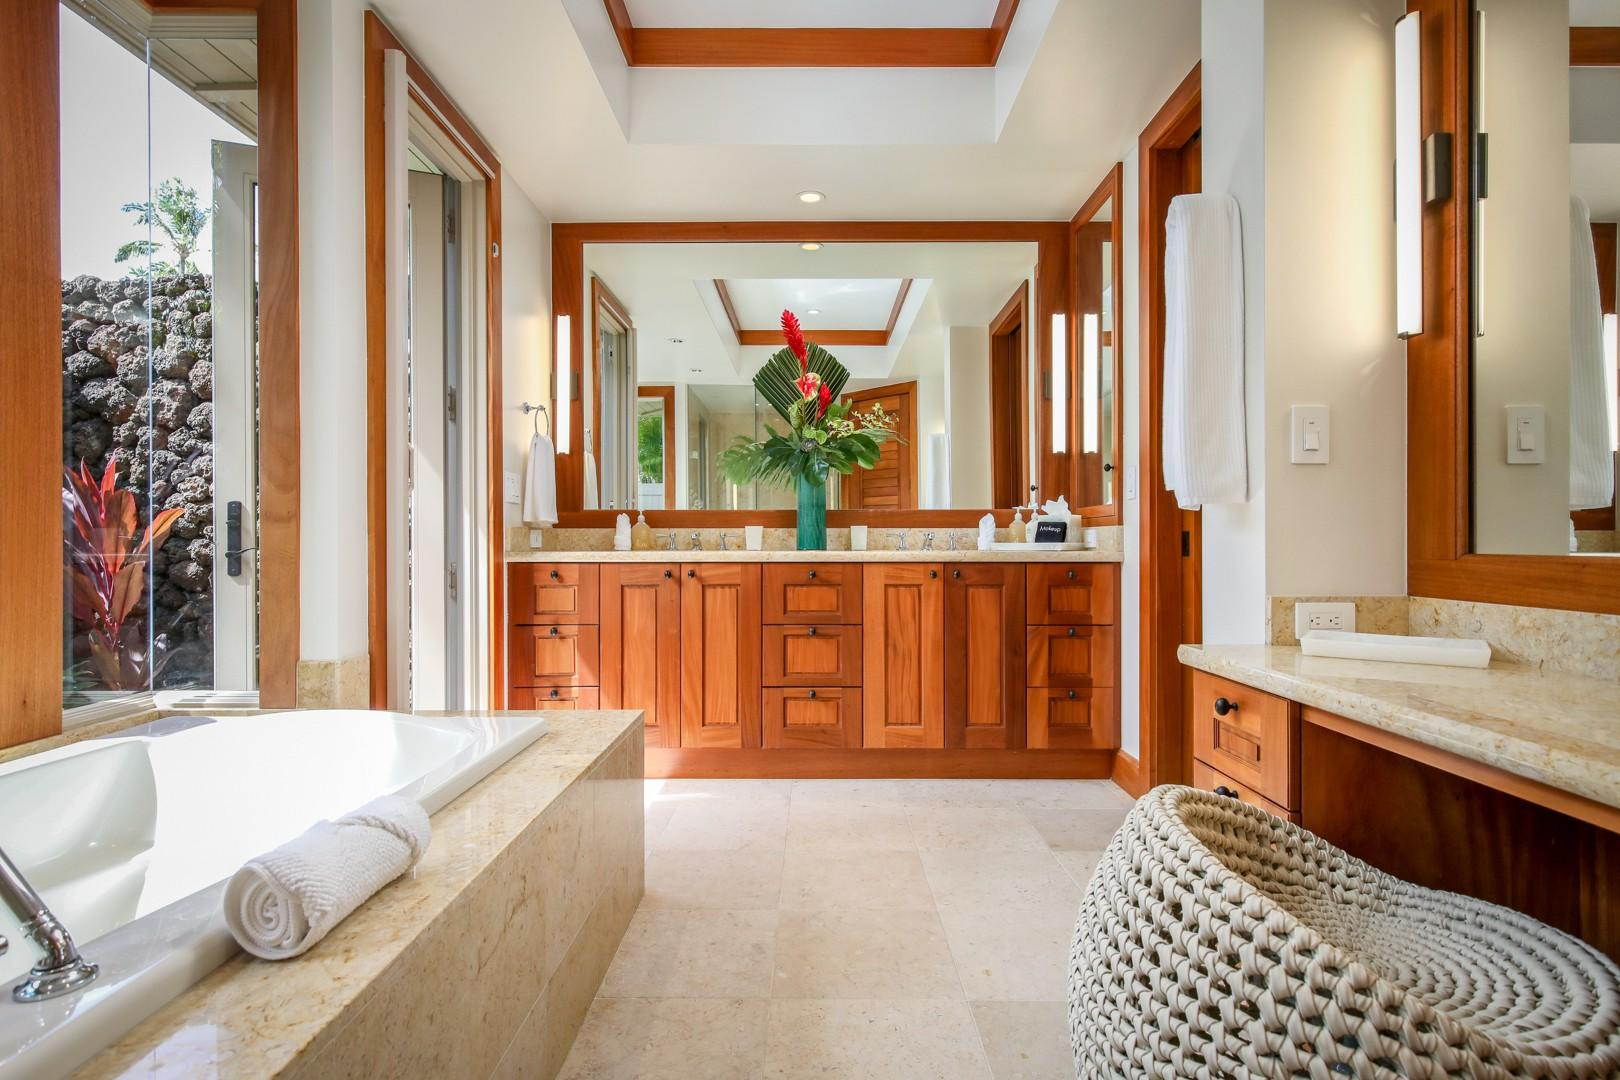 Guest Room 4's decadent full bath with soaking tub, walk-in shower, dual vanity and outdoor shower garden.